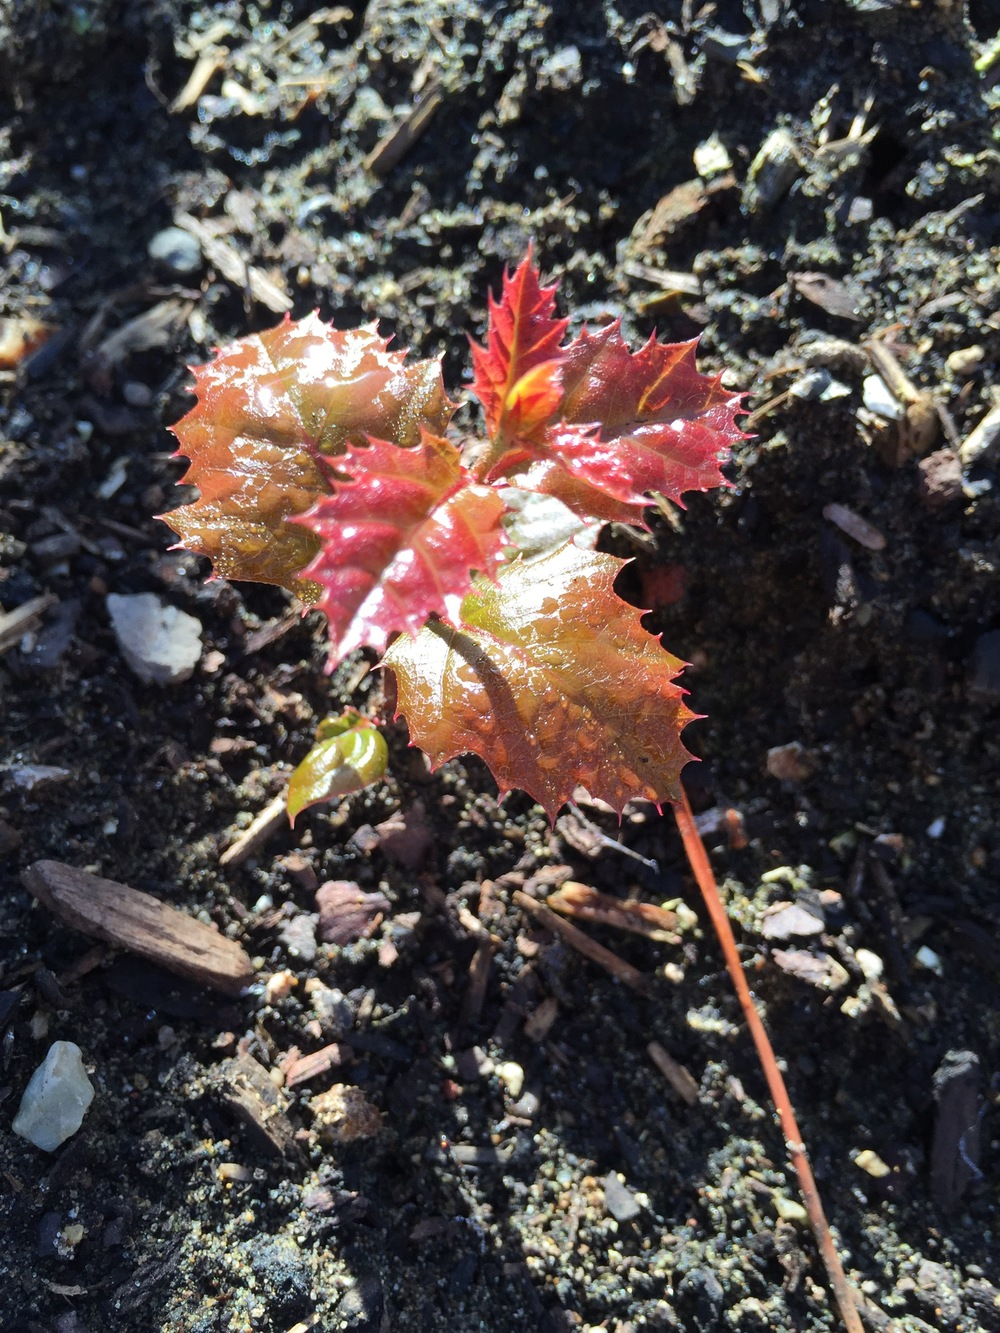 A squirrel strikes again! I pulled out this oak seedling as soon as I took the picture, as it was in my vegetable beds. Pretty, though.